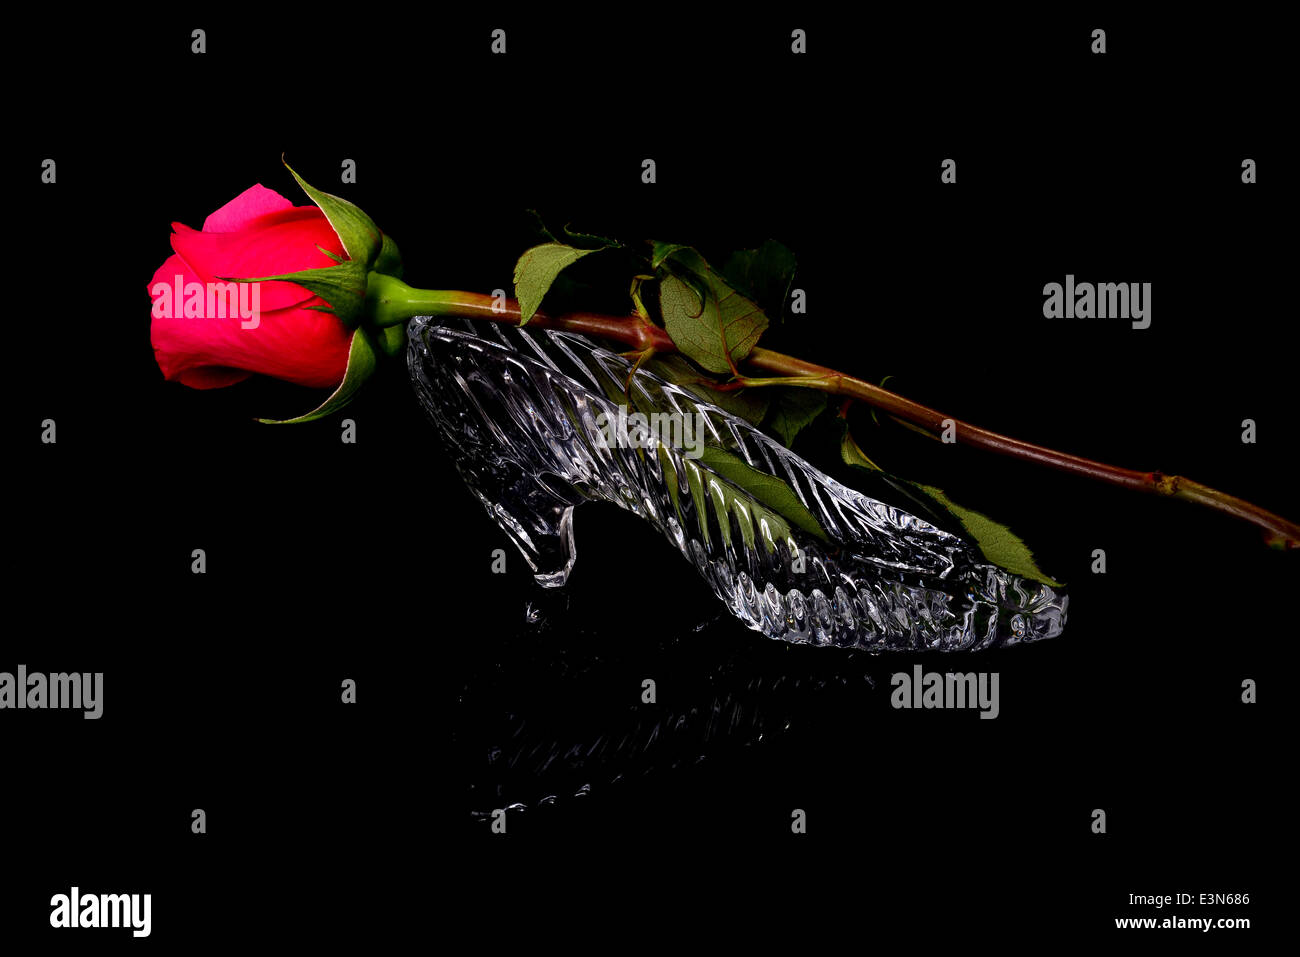 Glass slipper and Red rose isolated over a black background - Stock Image